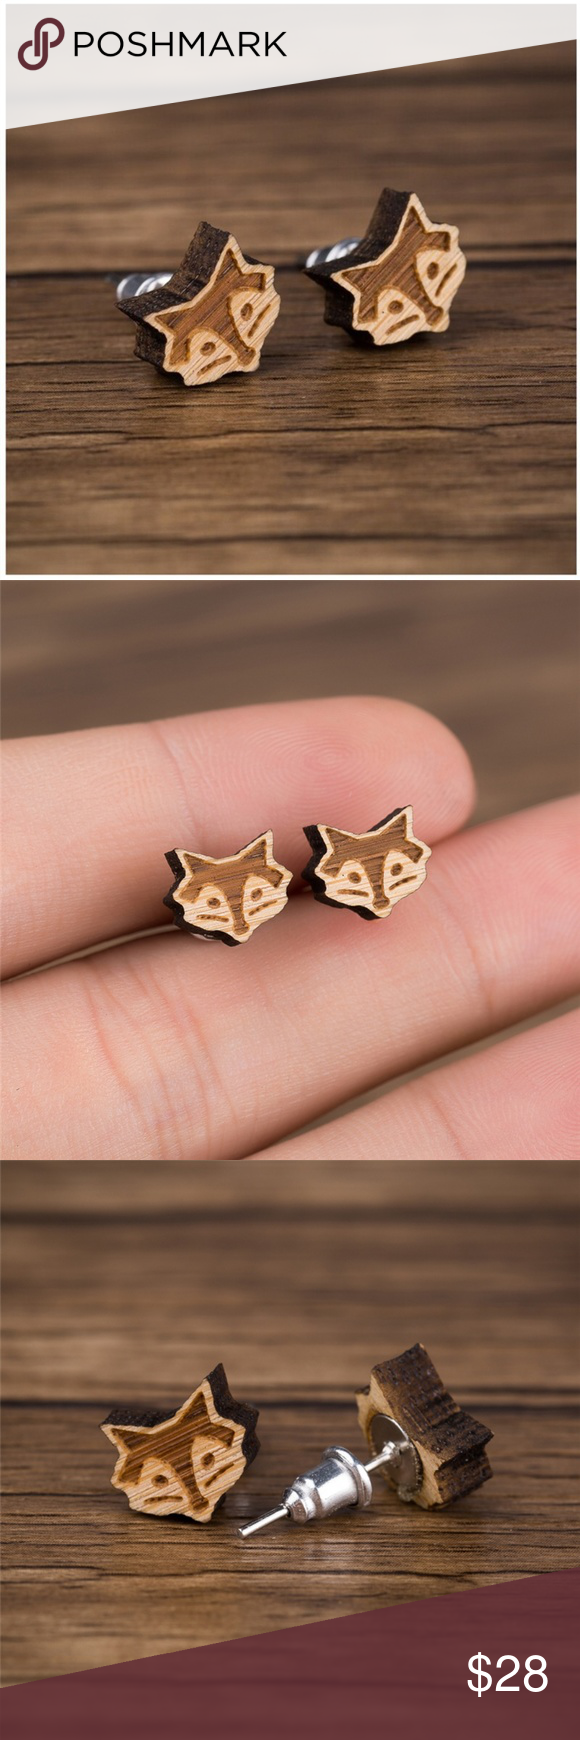 """Urban Outfitters """"What does the fox say?"""" Earrings NEW vintage wood fox earrings ....."""